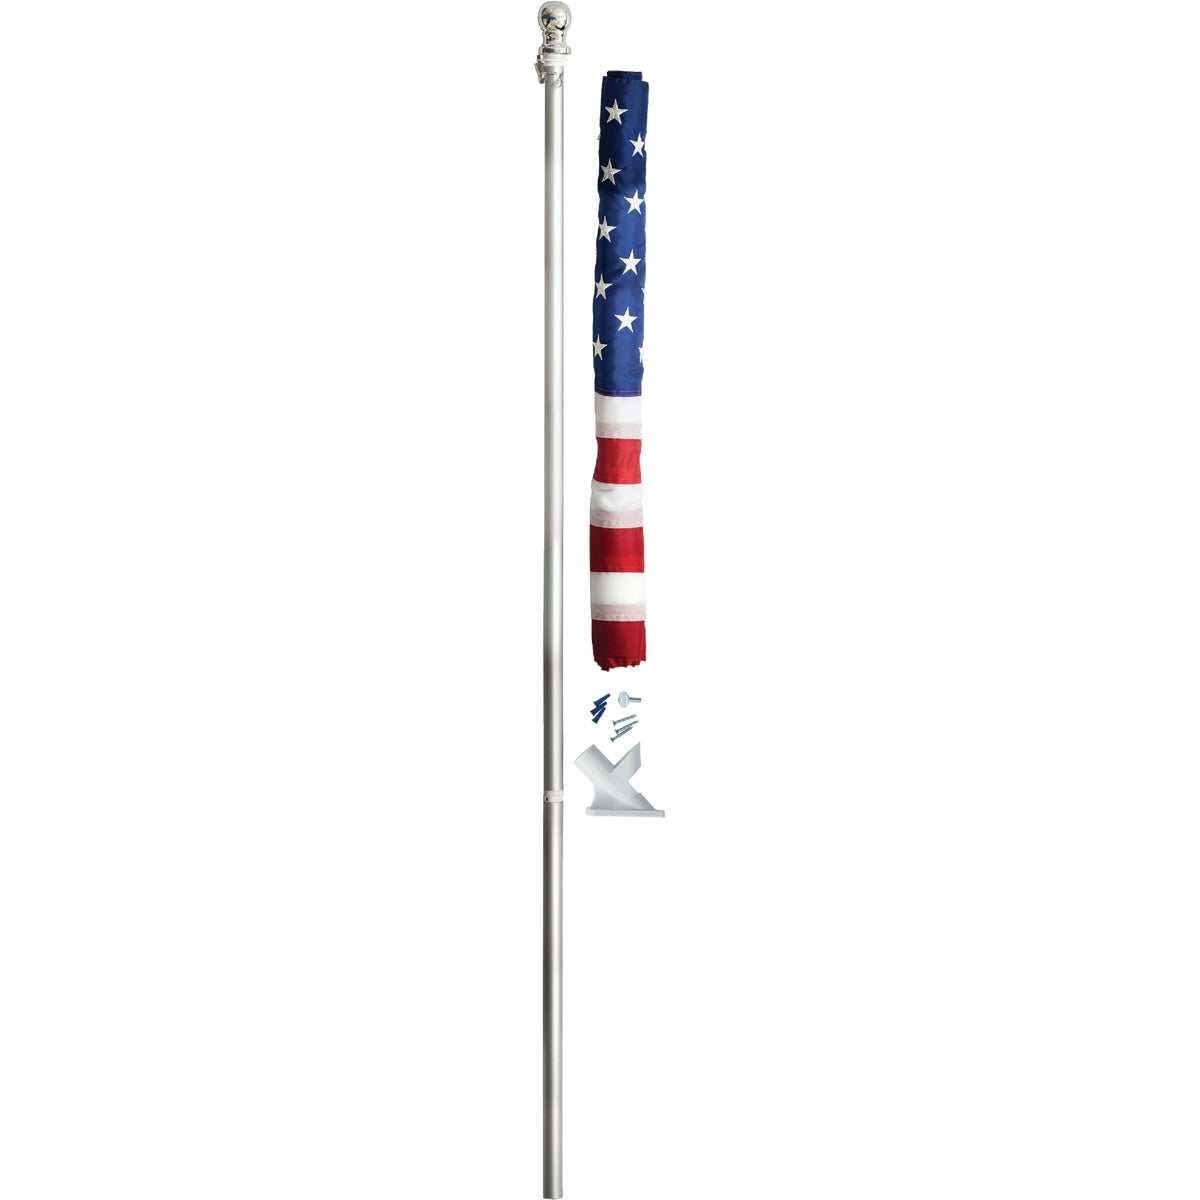 SPINNER POLE FLAG KIT - 99060 by Valley Forge Flag